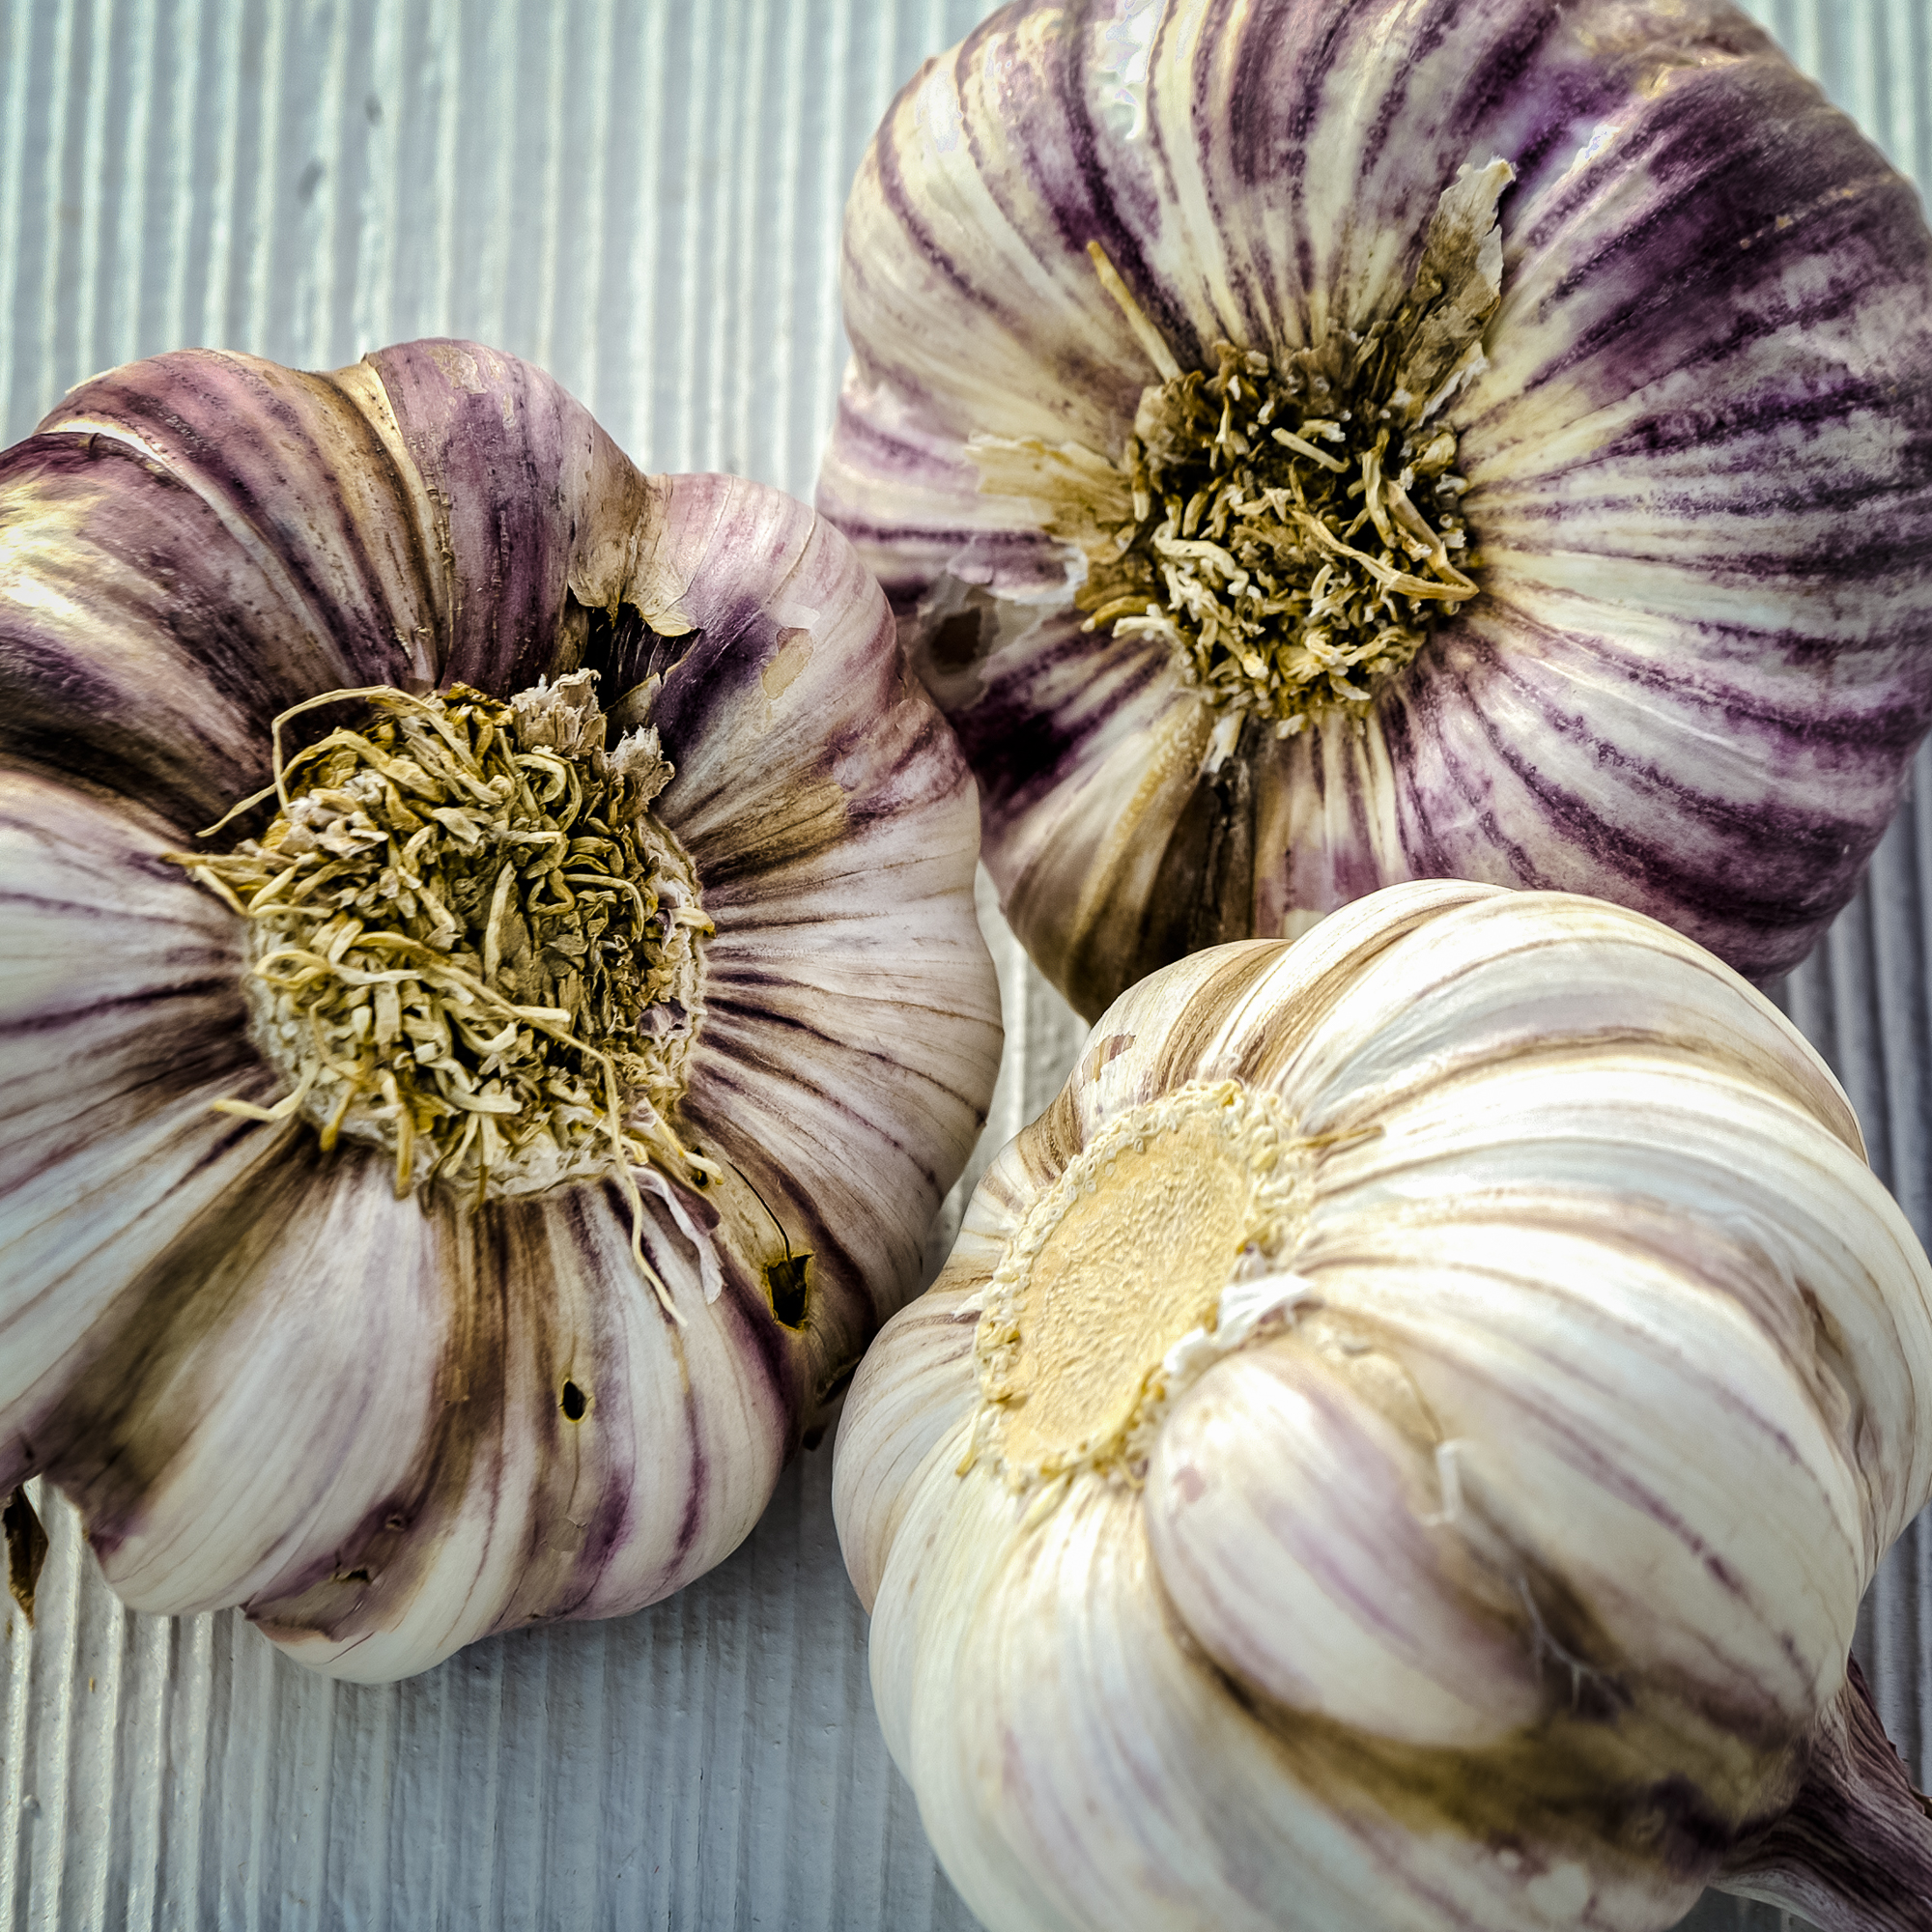 Garlic - Caro Blackwell Photography